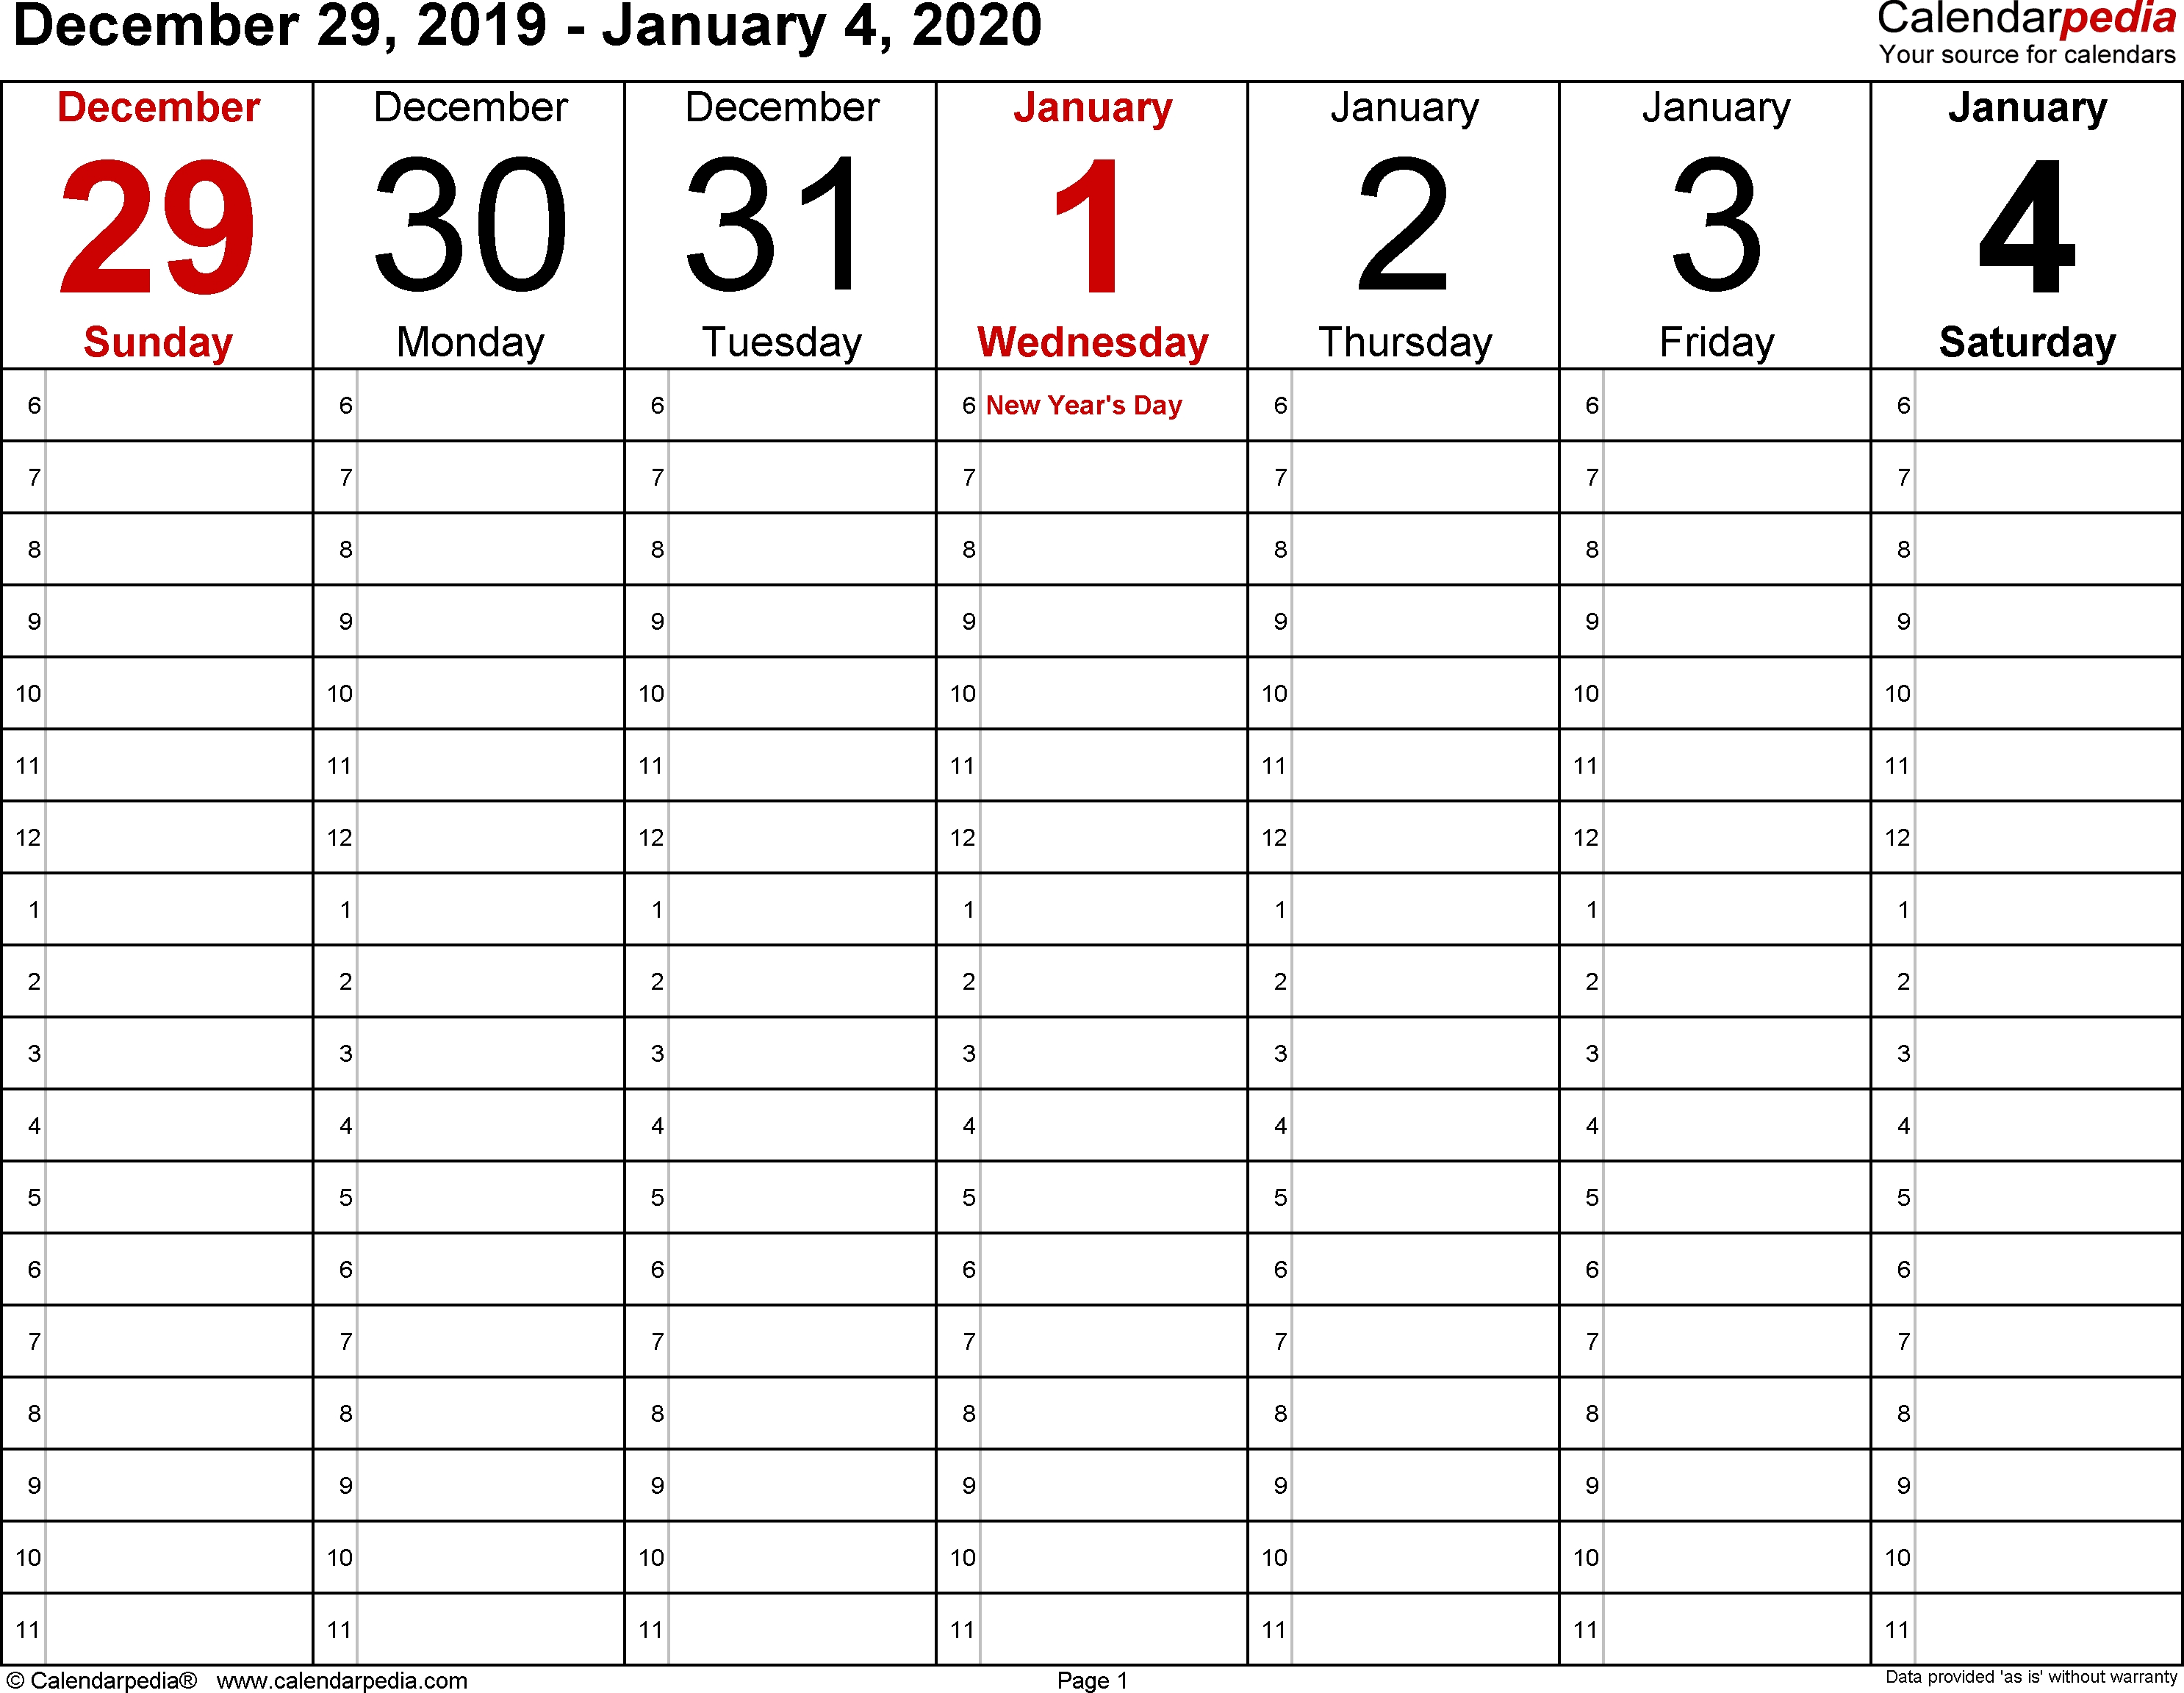 Weekly Calendar 2020 For Word - 12 Free Printable Templates regarding 2020 Calender With Space To Write